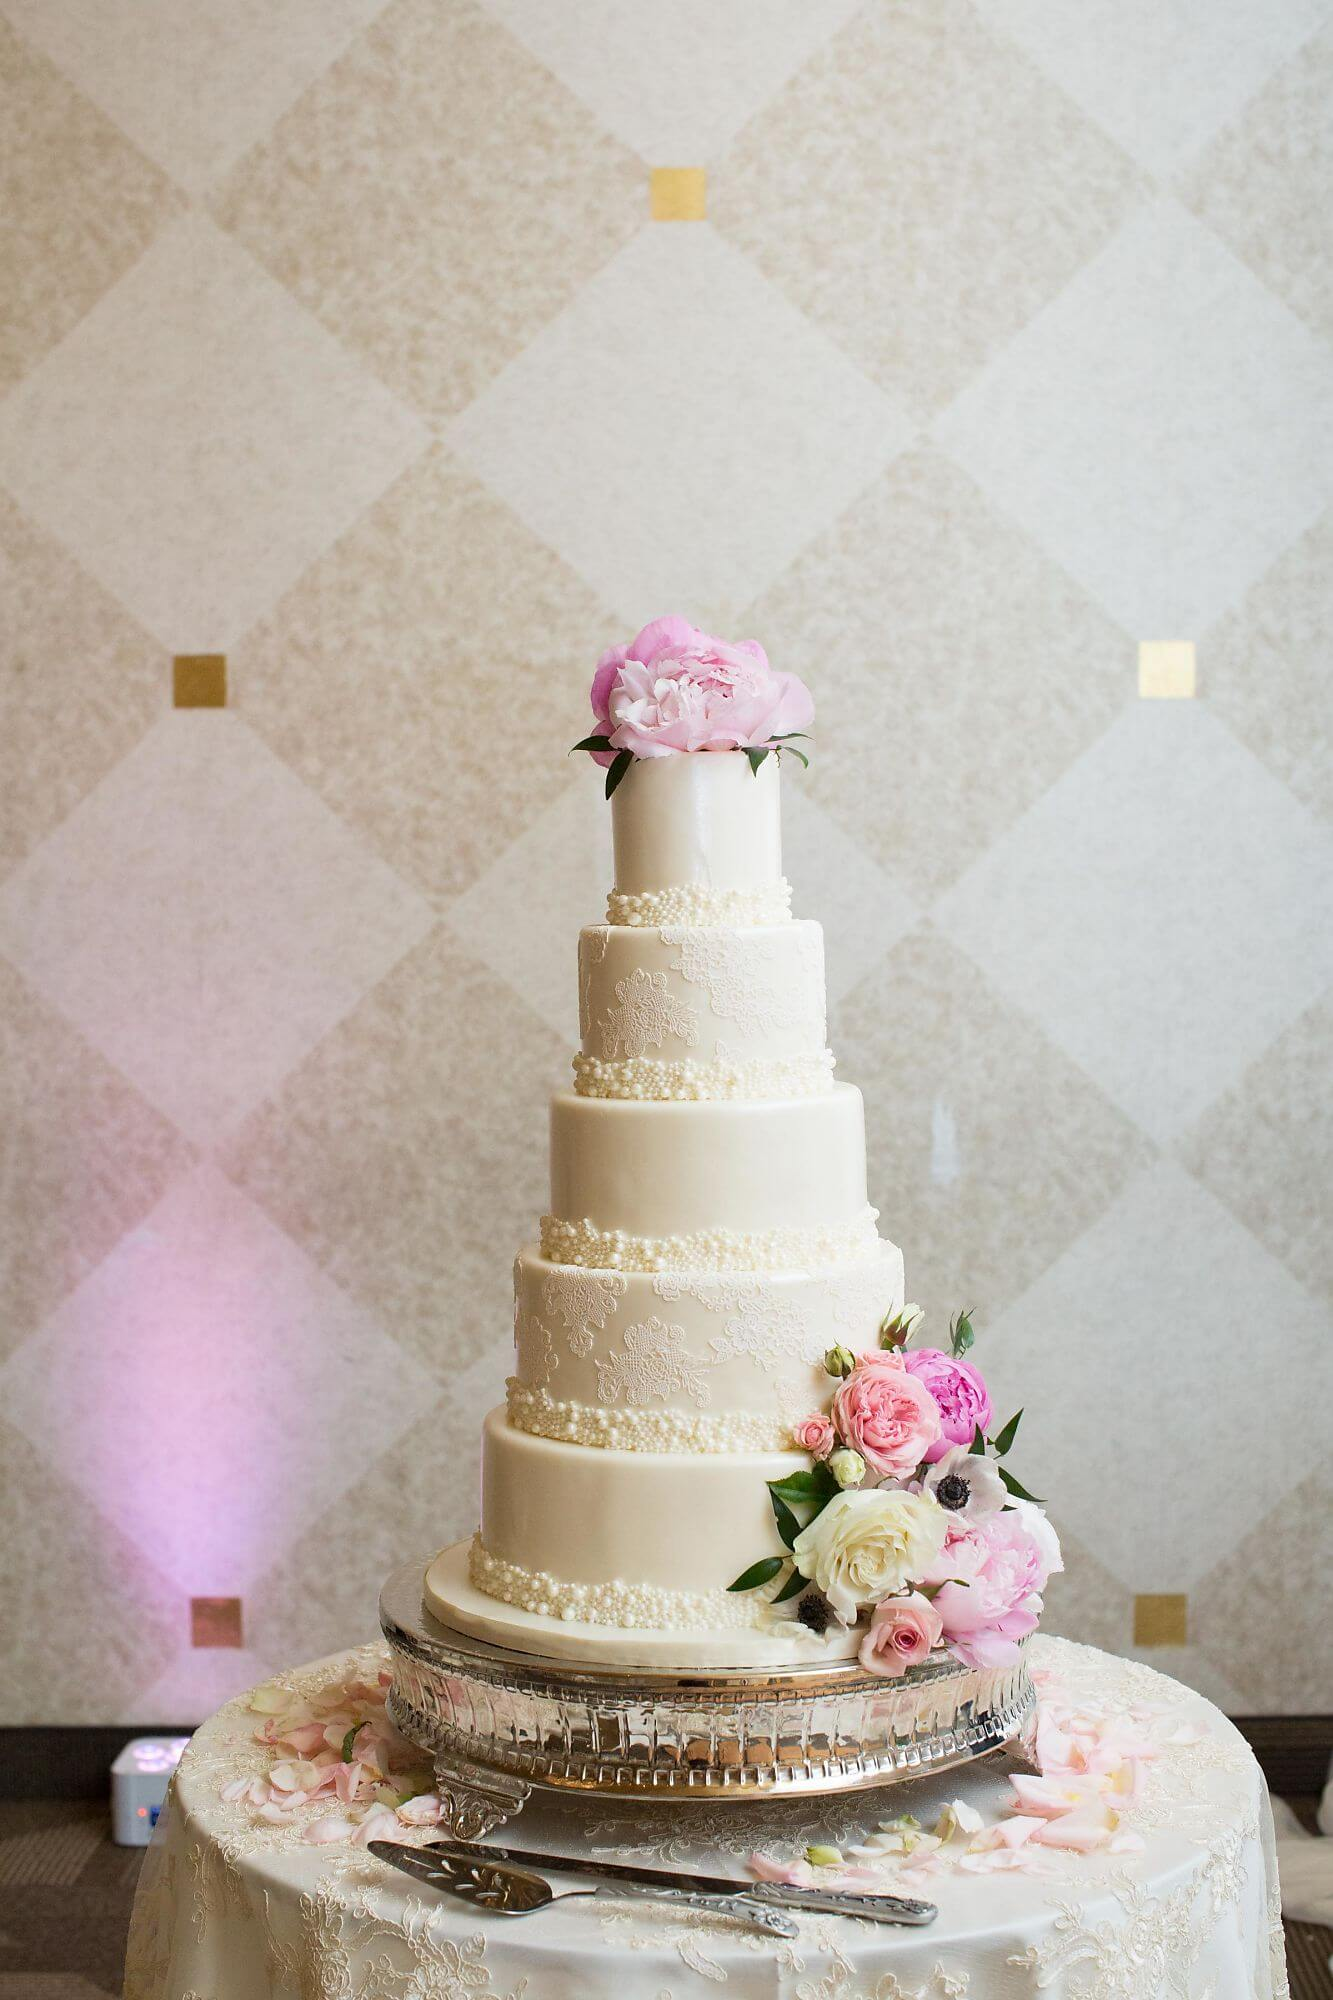 5-tier elegant white wedding cake with pink and white floral topper and accents - Champagne, Blush and Gold Niagara Wedding - Historia Wedding and Event Planning